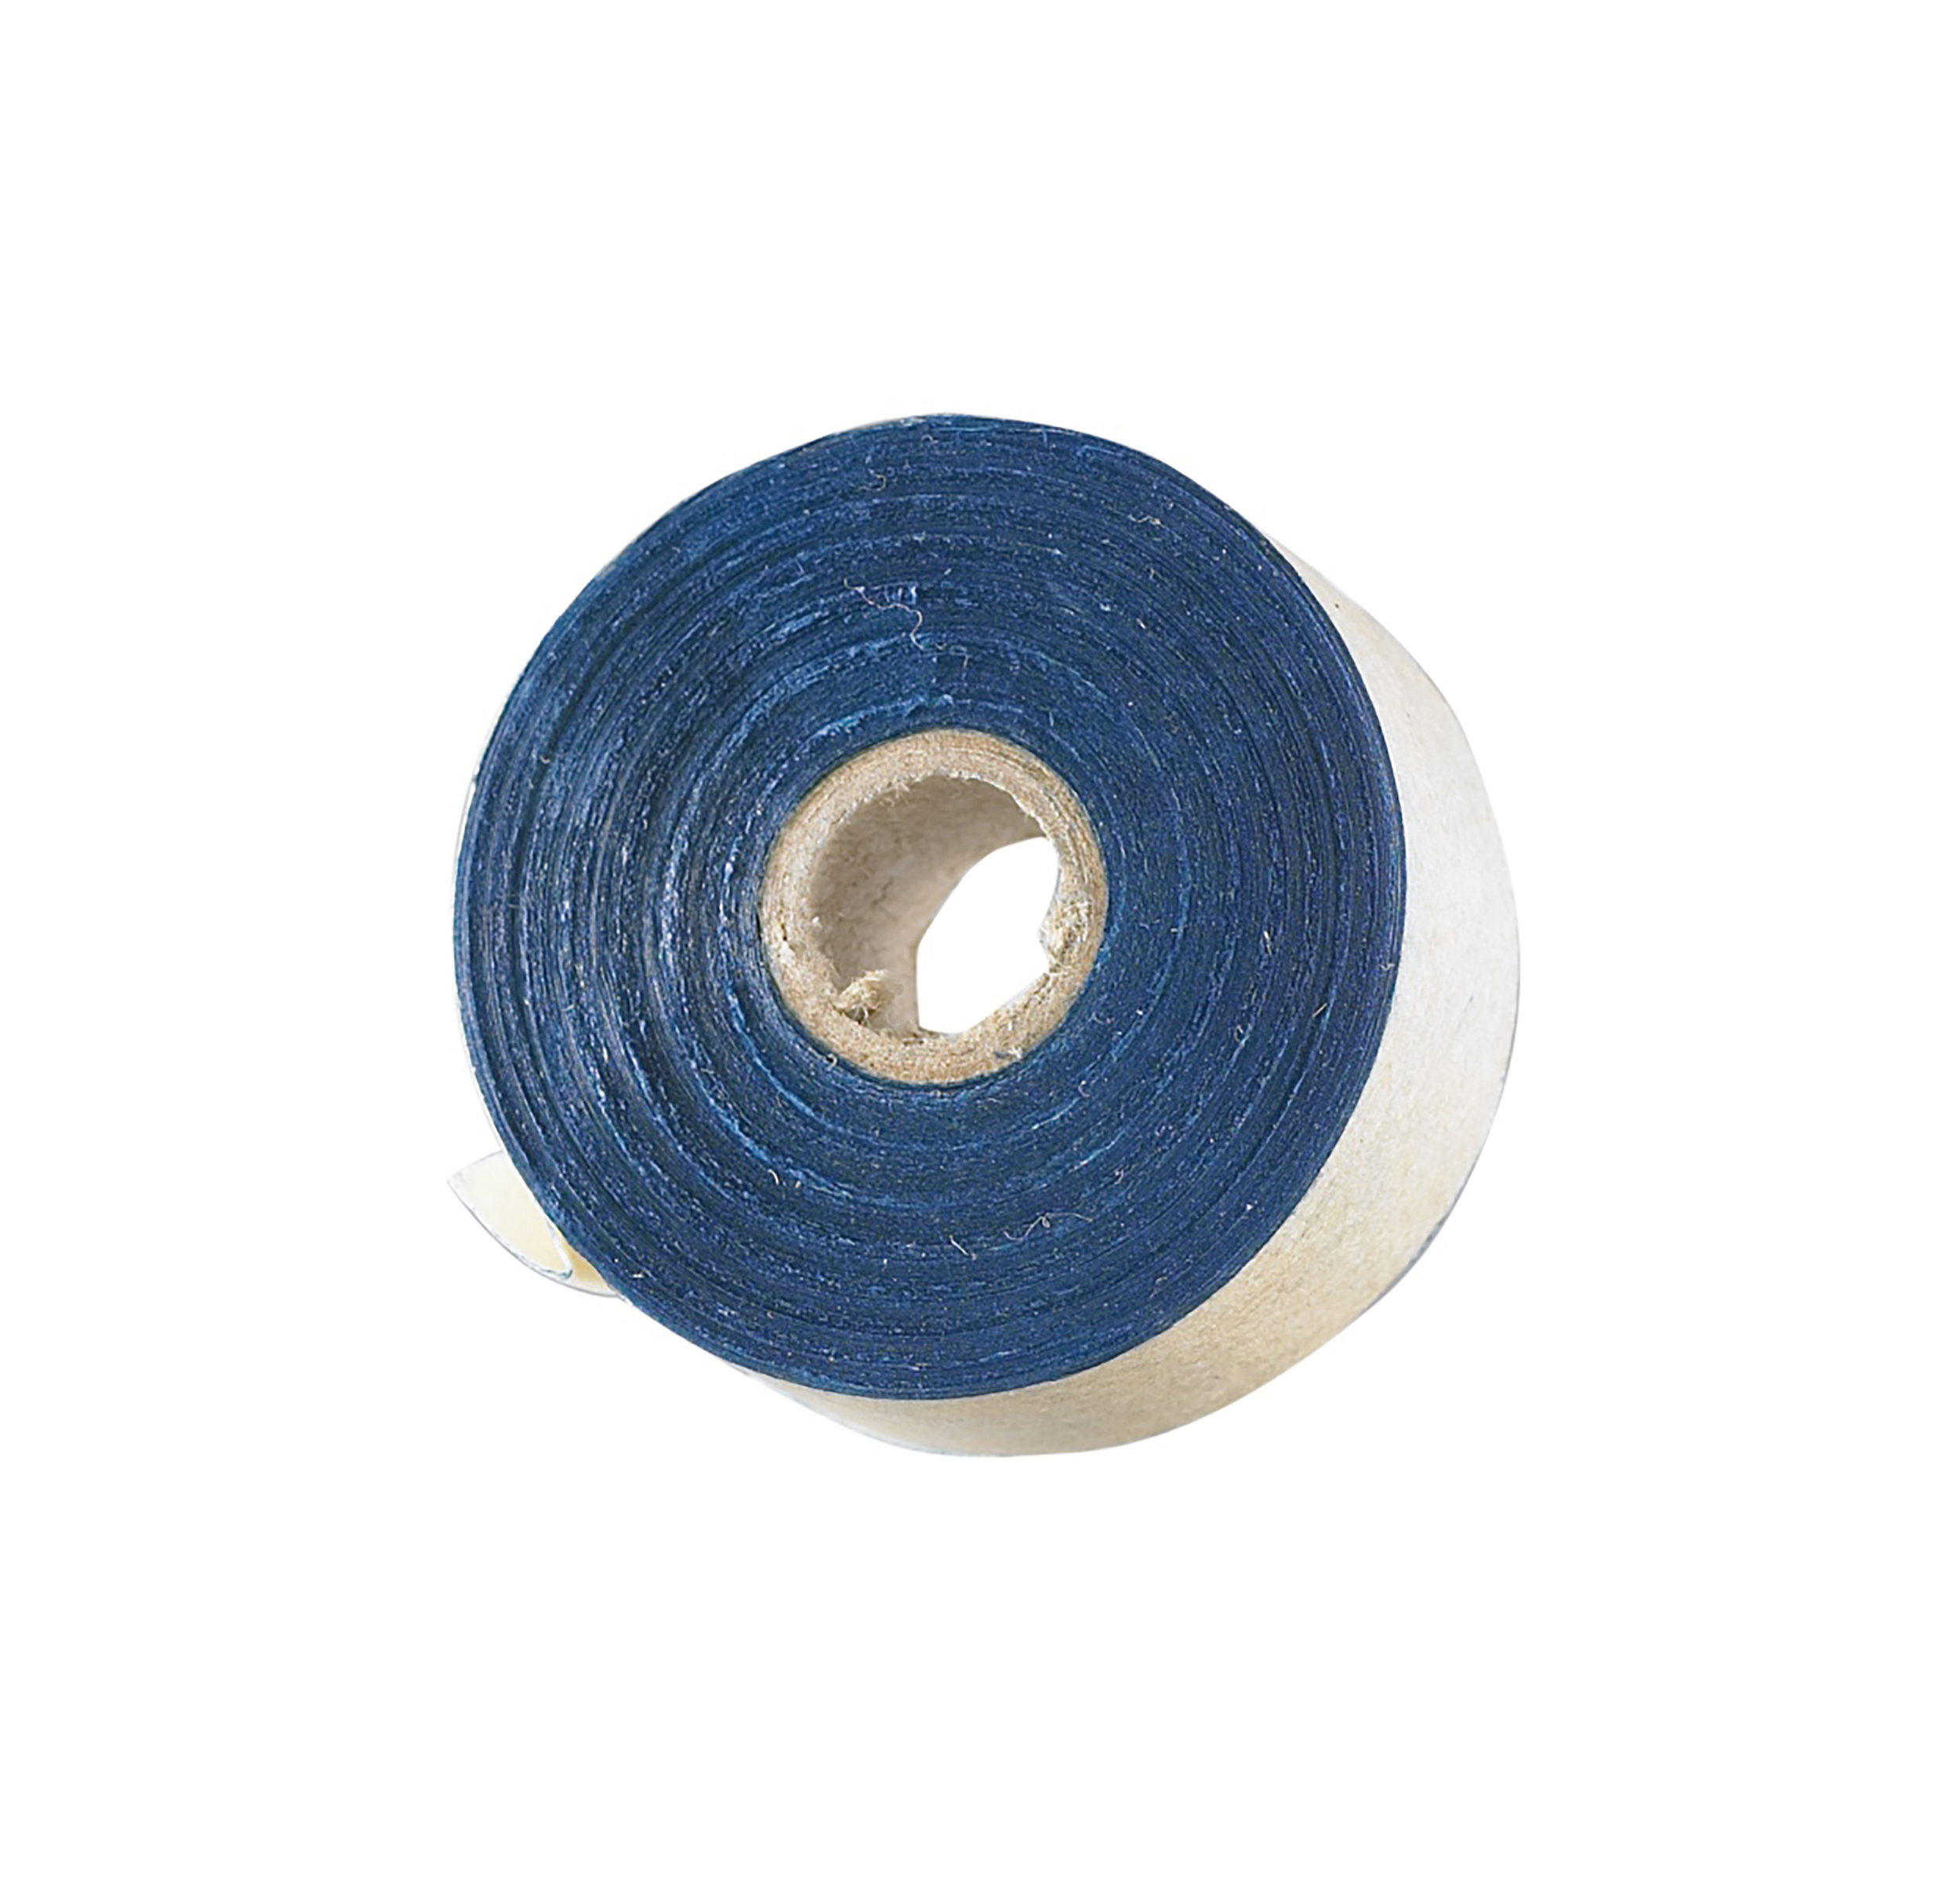 9025309 Articodent Thin, Blue, Refill Roll, 25 ft, 38812